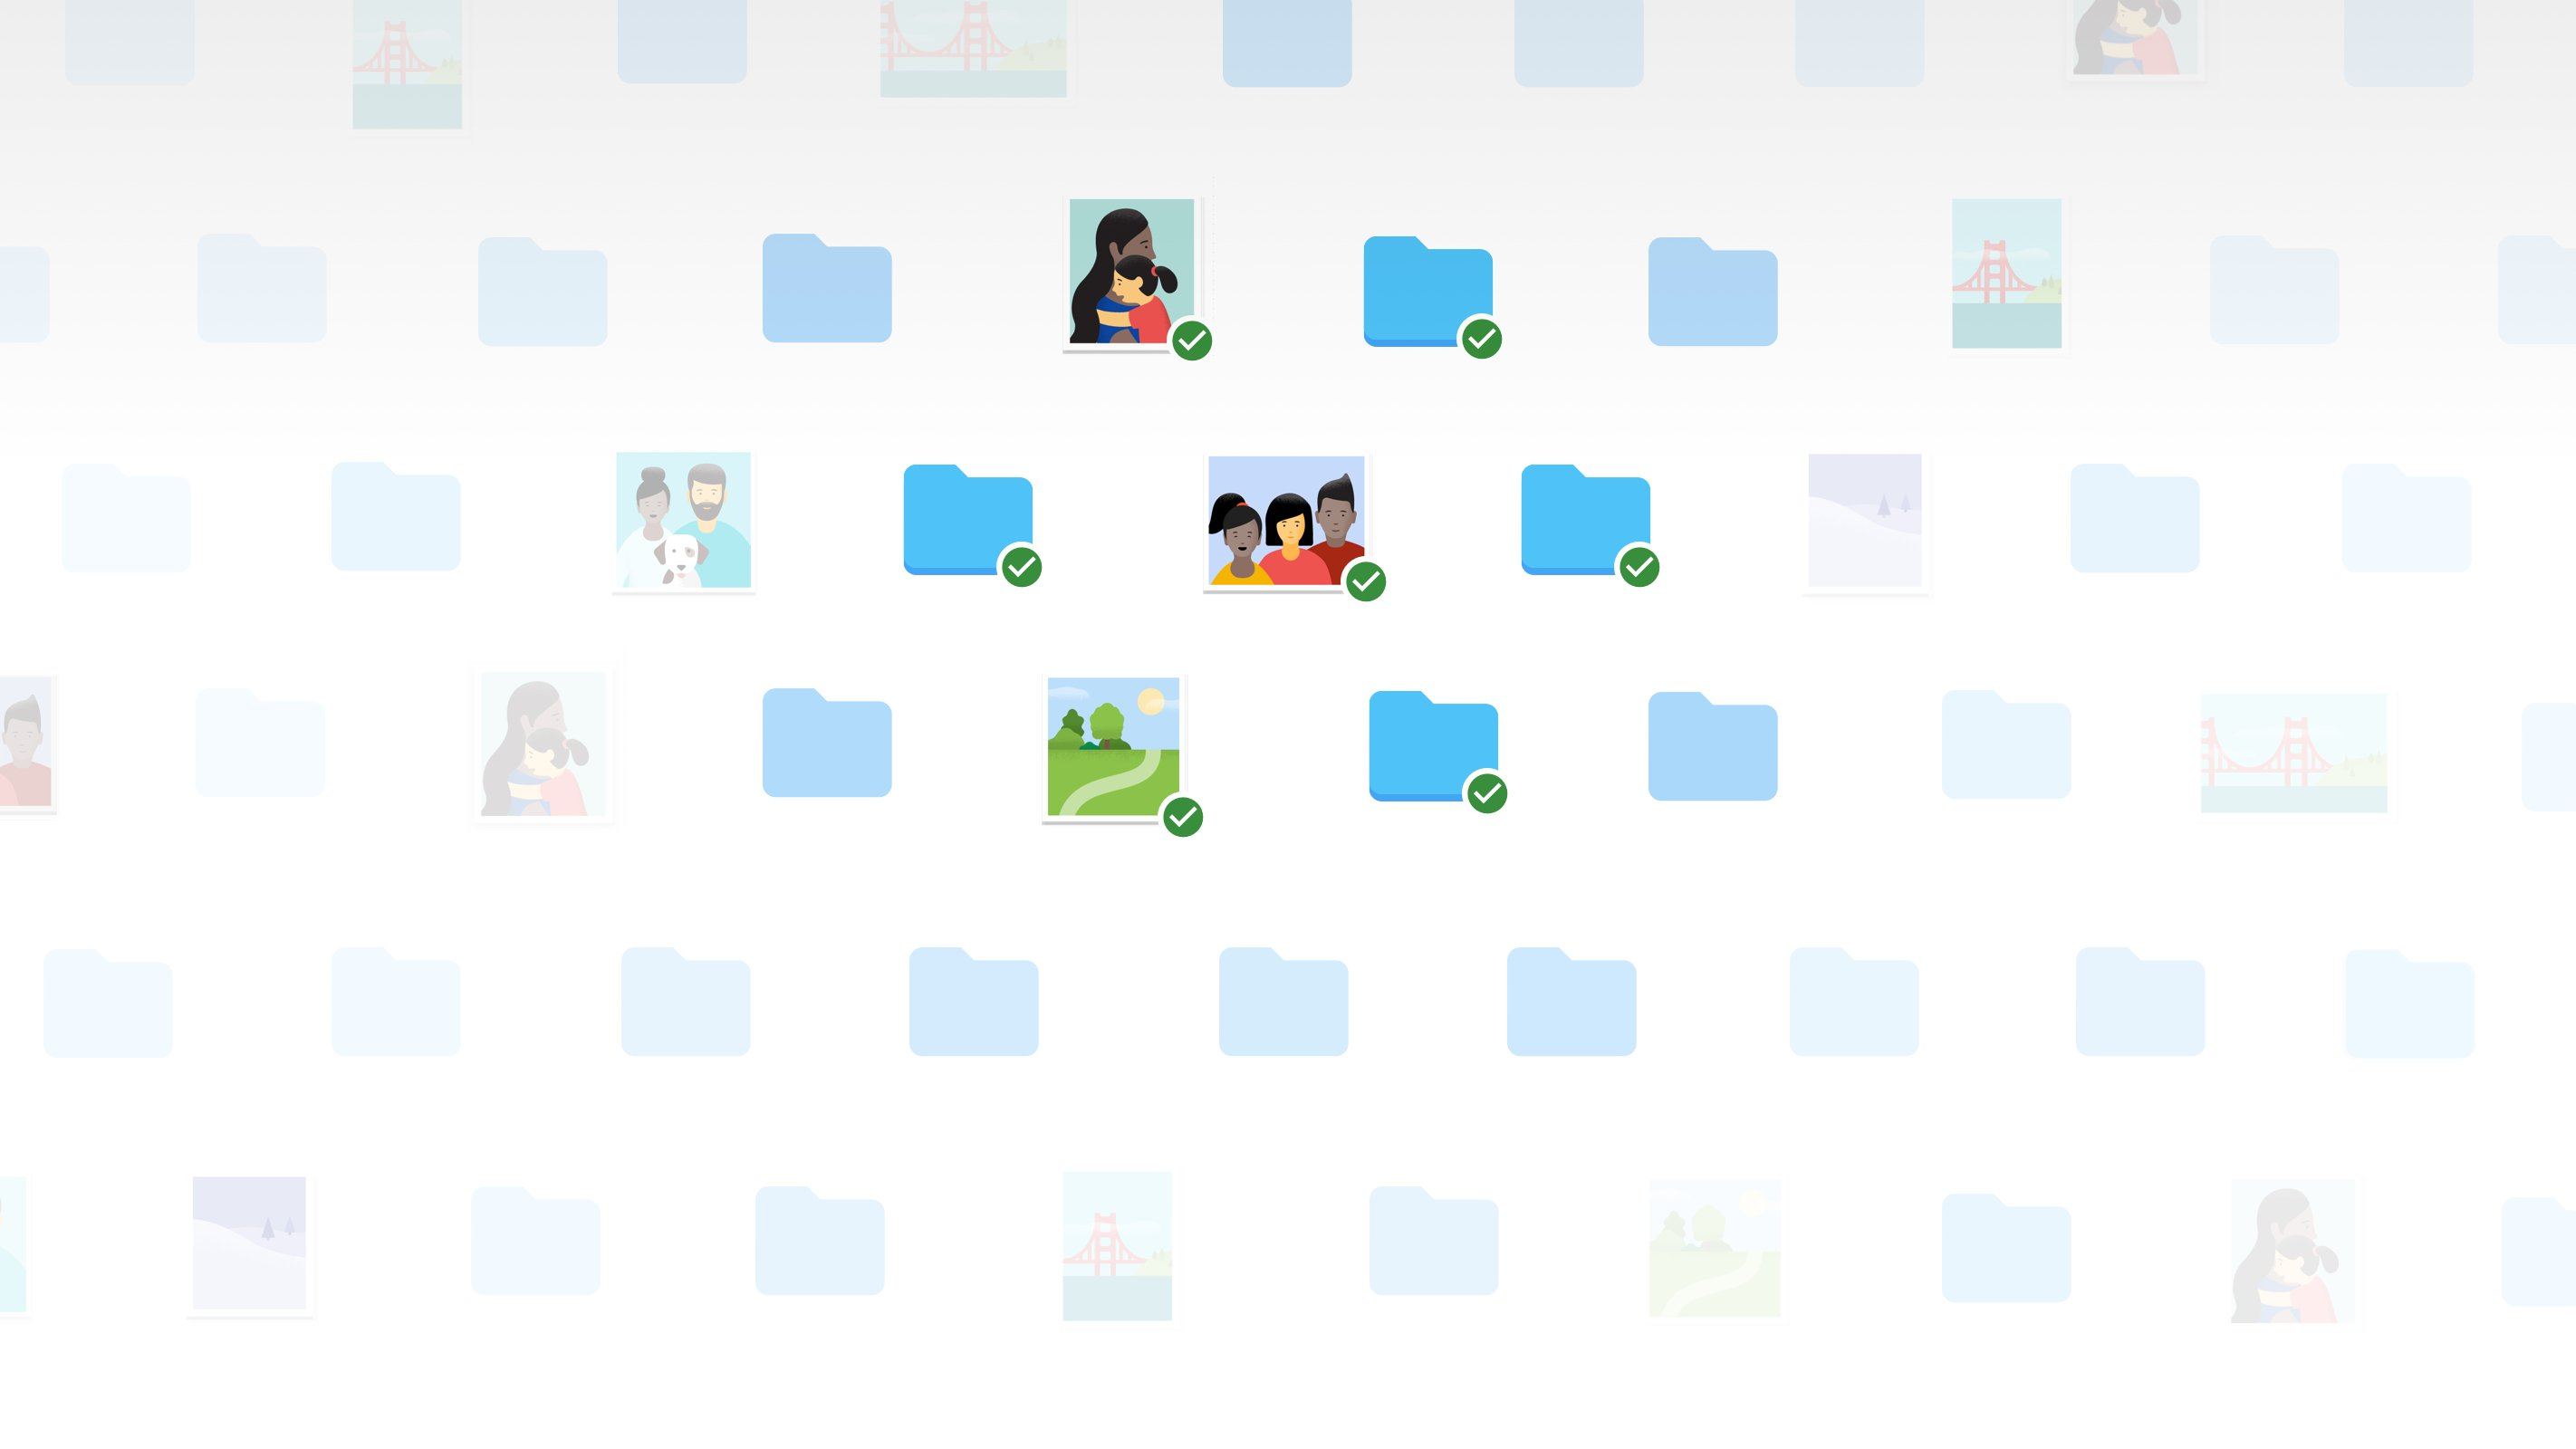 Google launches a new Backup & Sync desktop app for uploading files